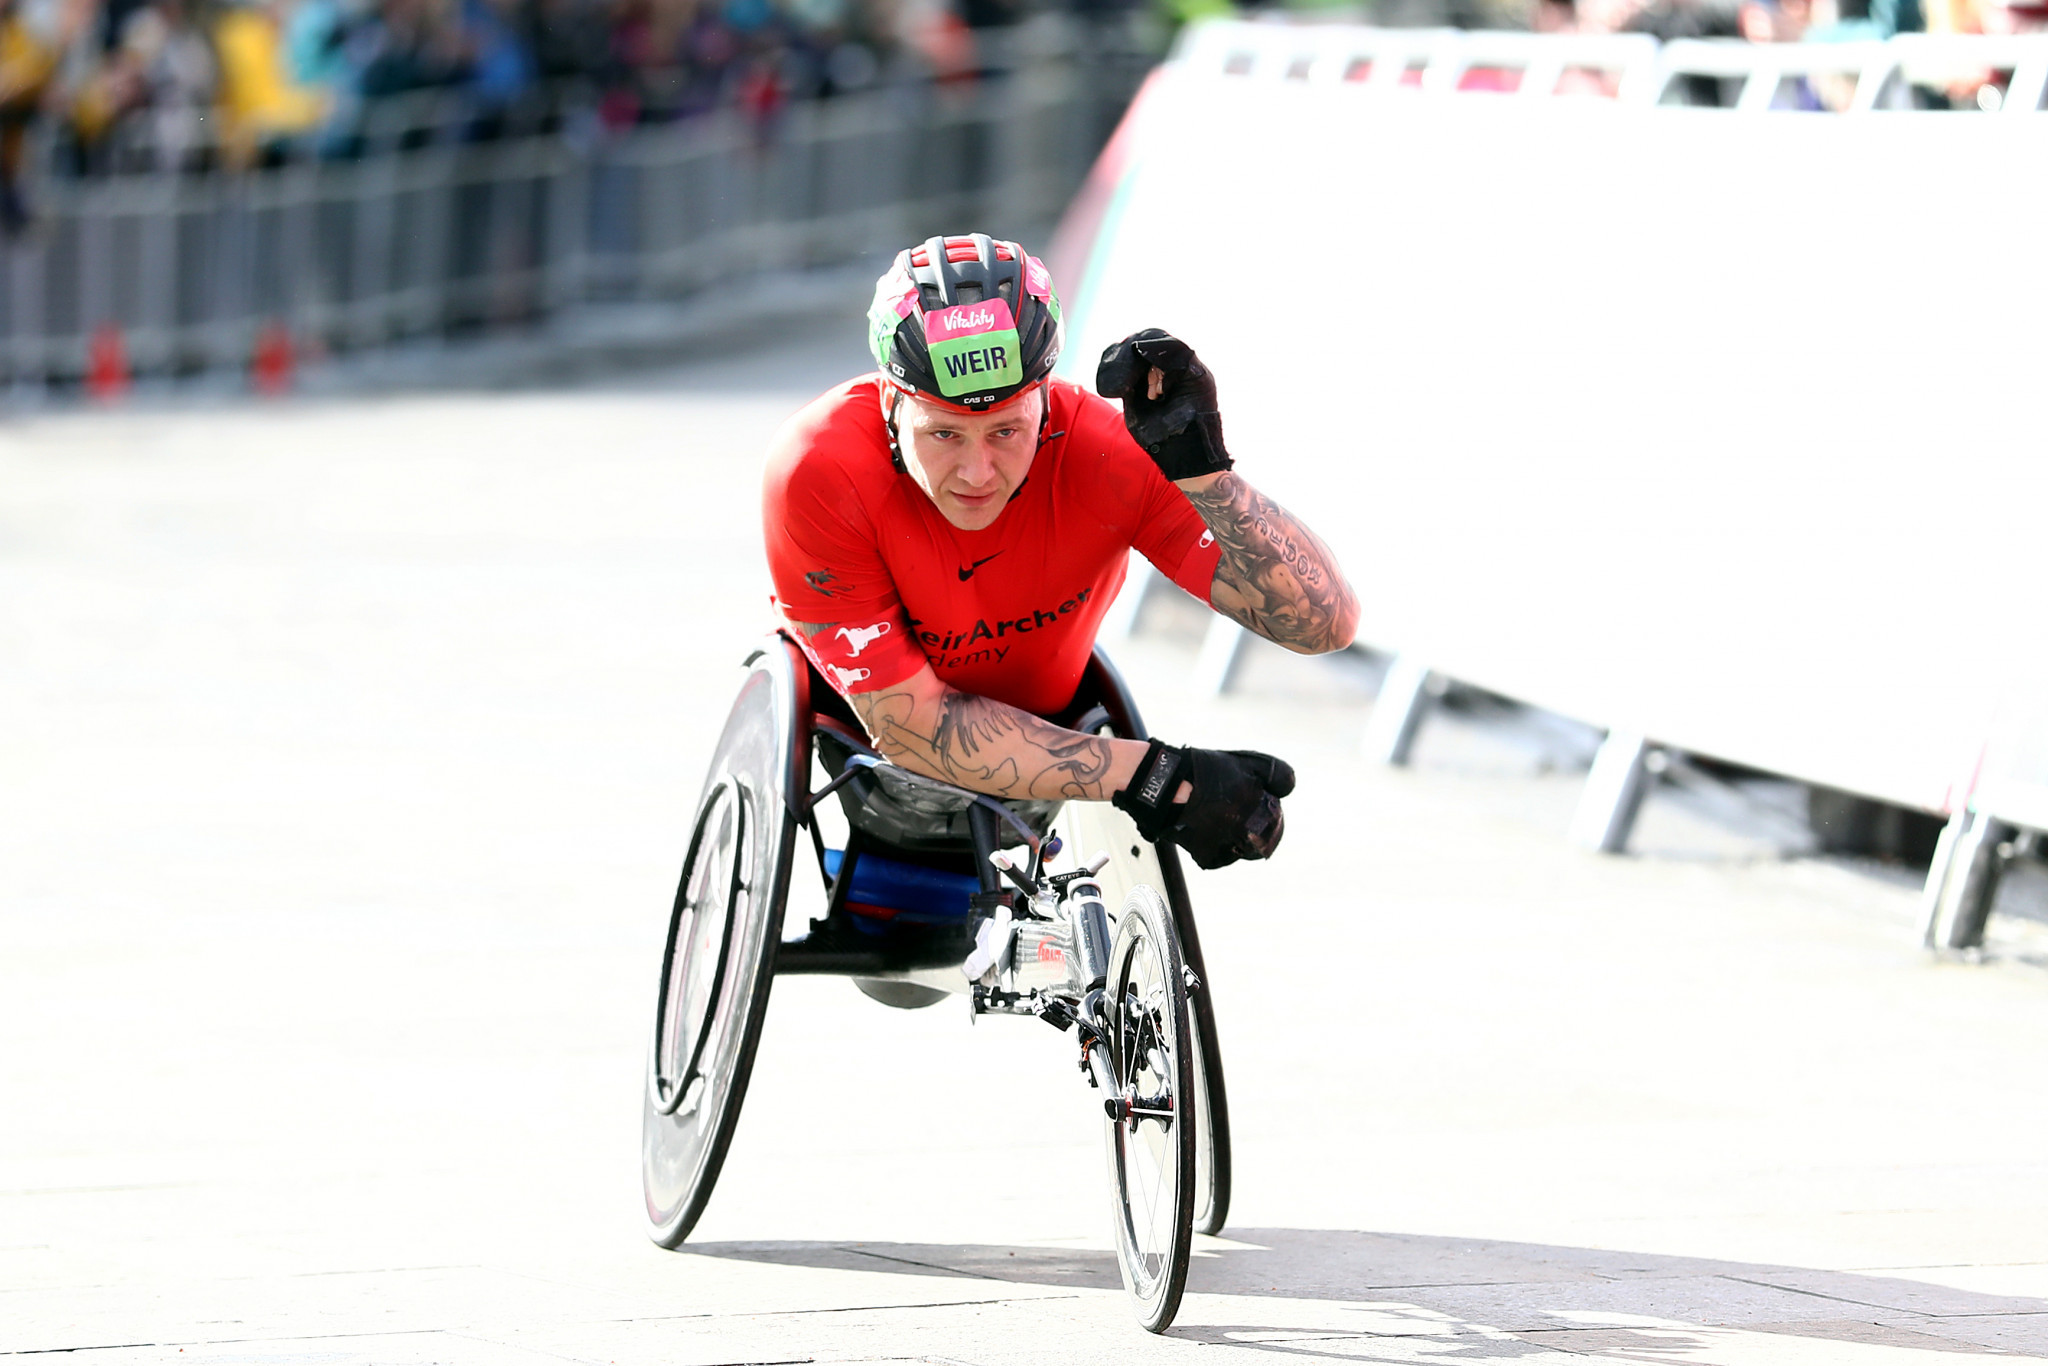 David Weir will compete for the 20th time at the London Marathon on Sunday ©Getty Images